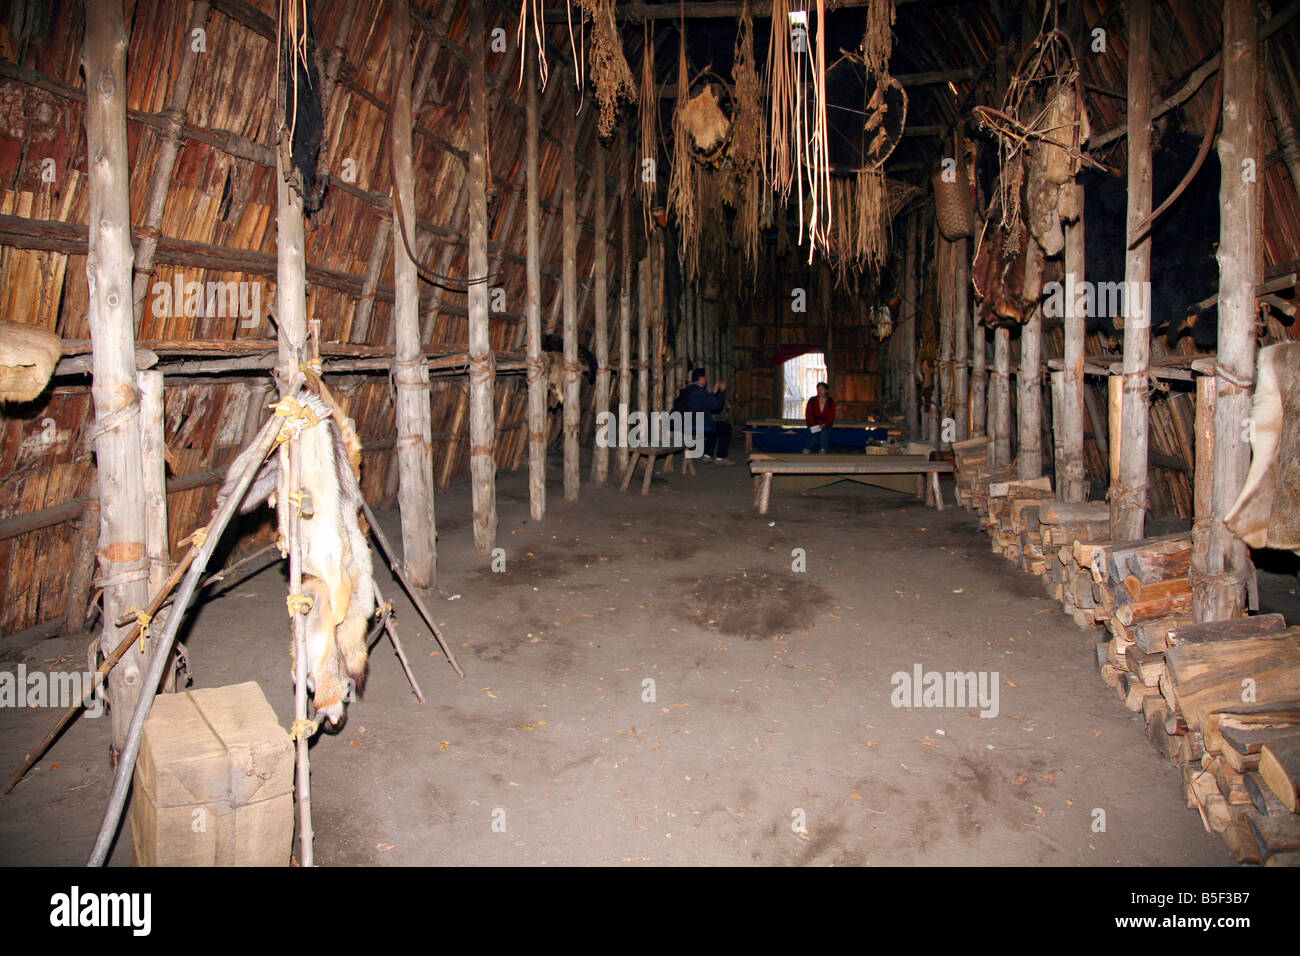 Indian Trappers Furs hung inside the Huron Long house for curing at the authentic Huron Indian Village in Midland - Stock Image